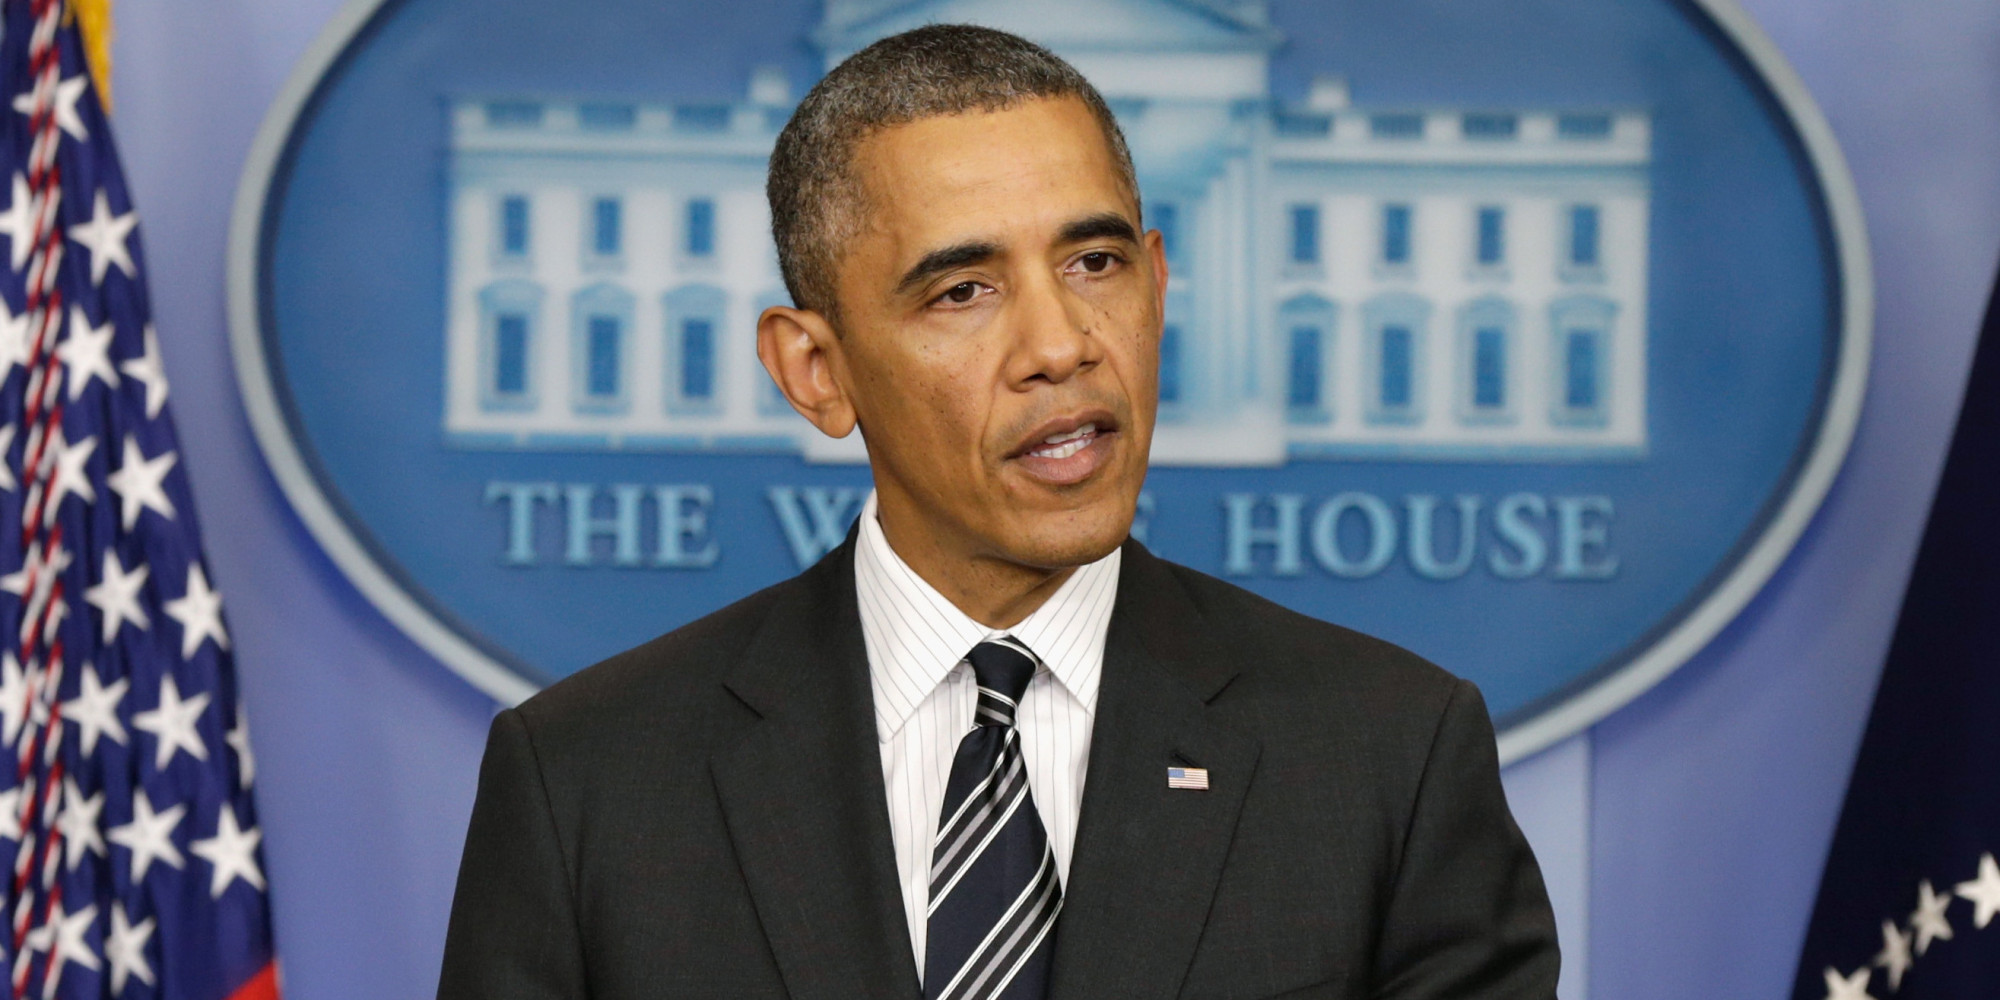 President Obama Makes Statement In Brady Briefing Room